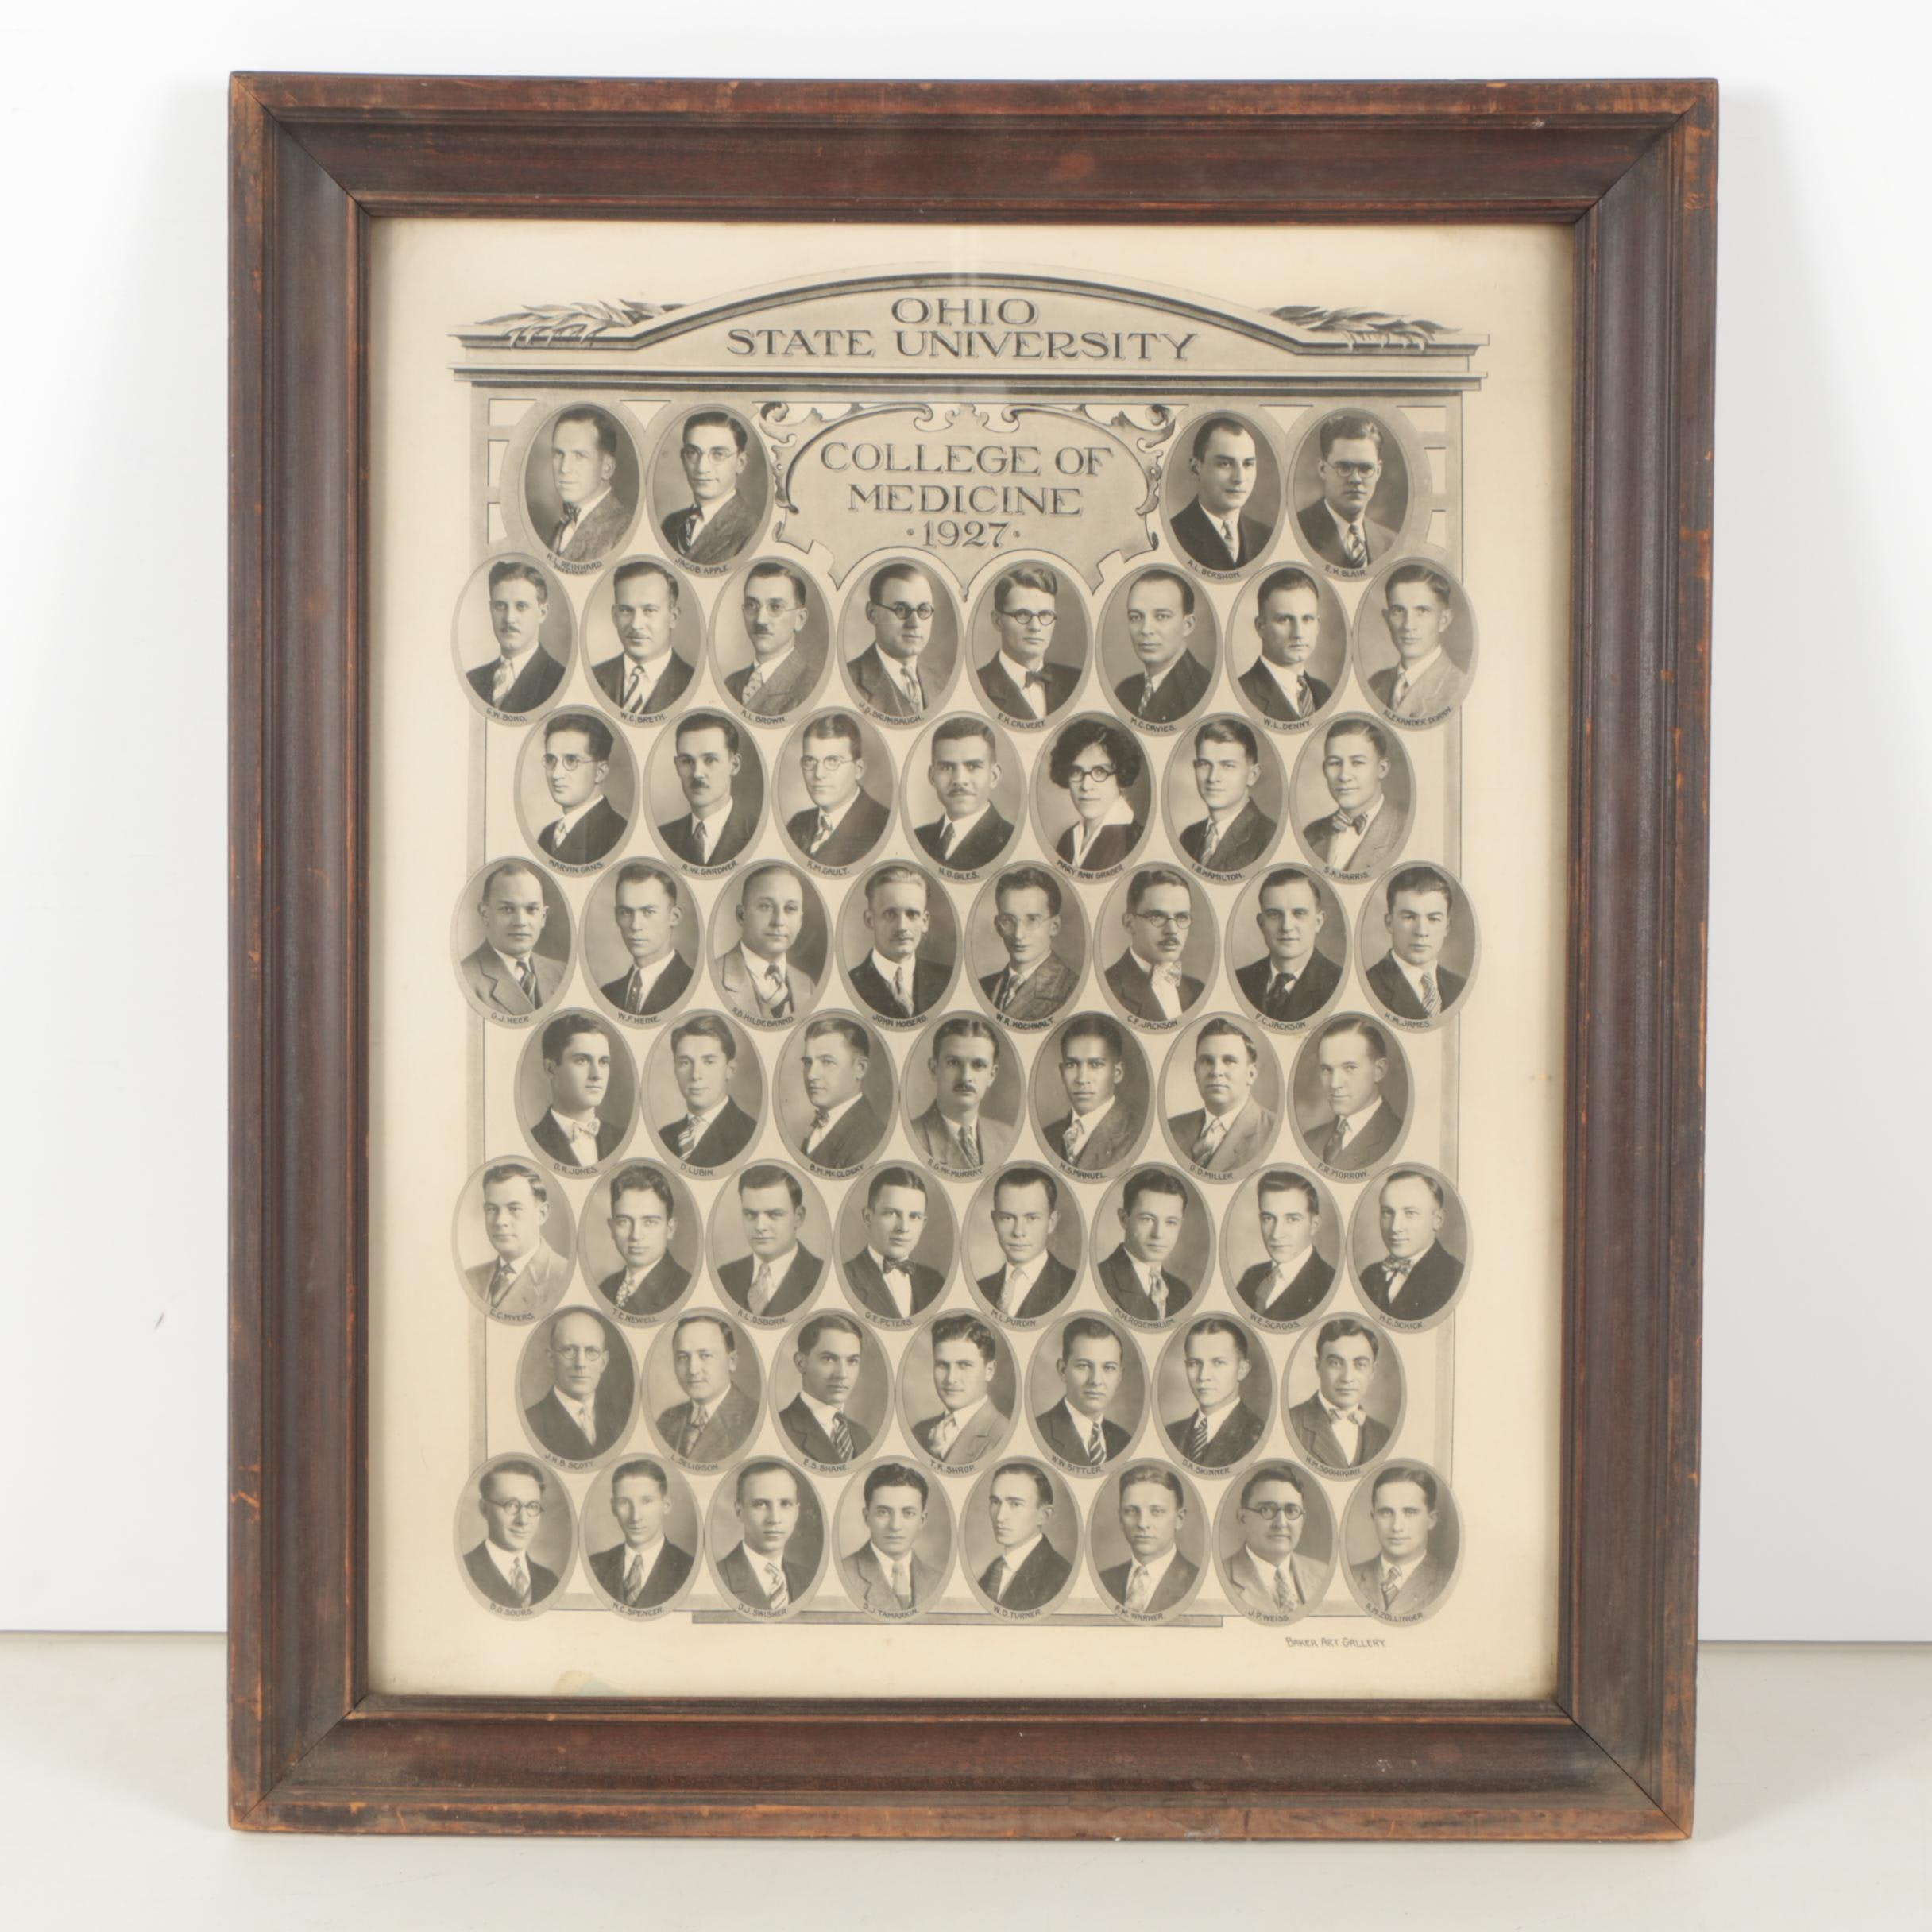 Silver Reproduction Photograph of Ohio State University Medical School